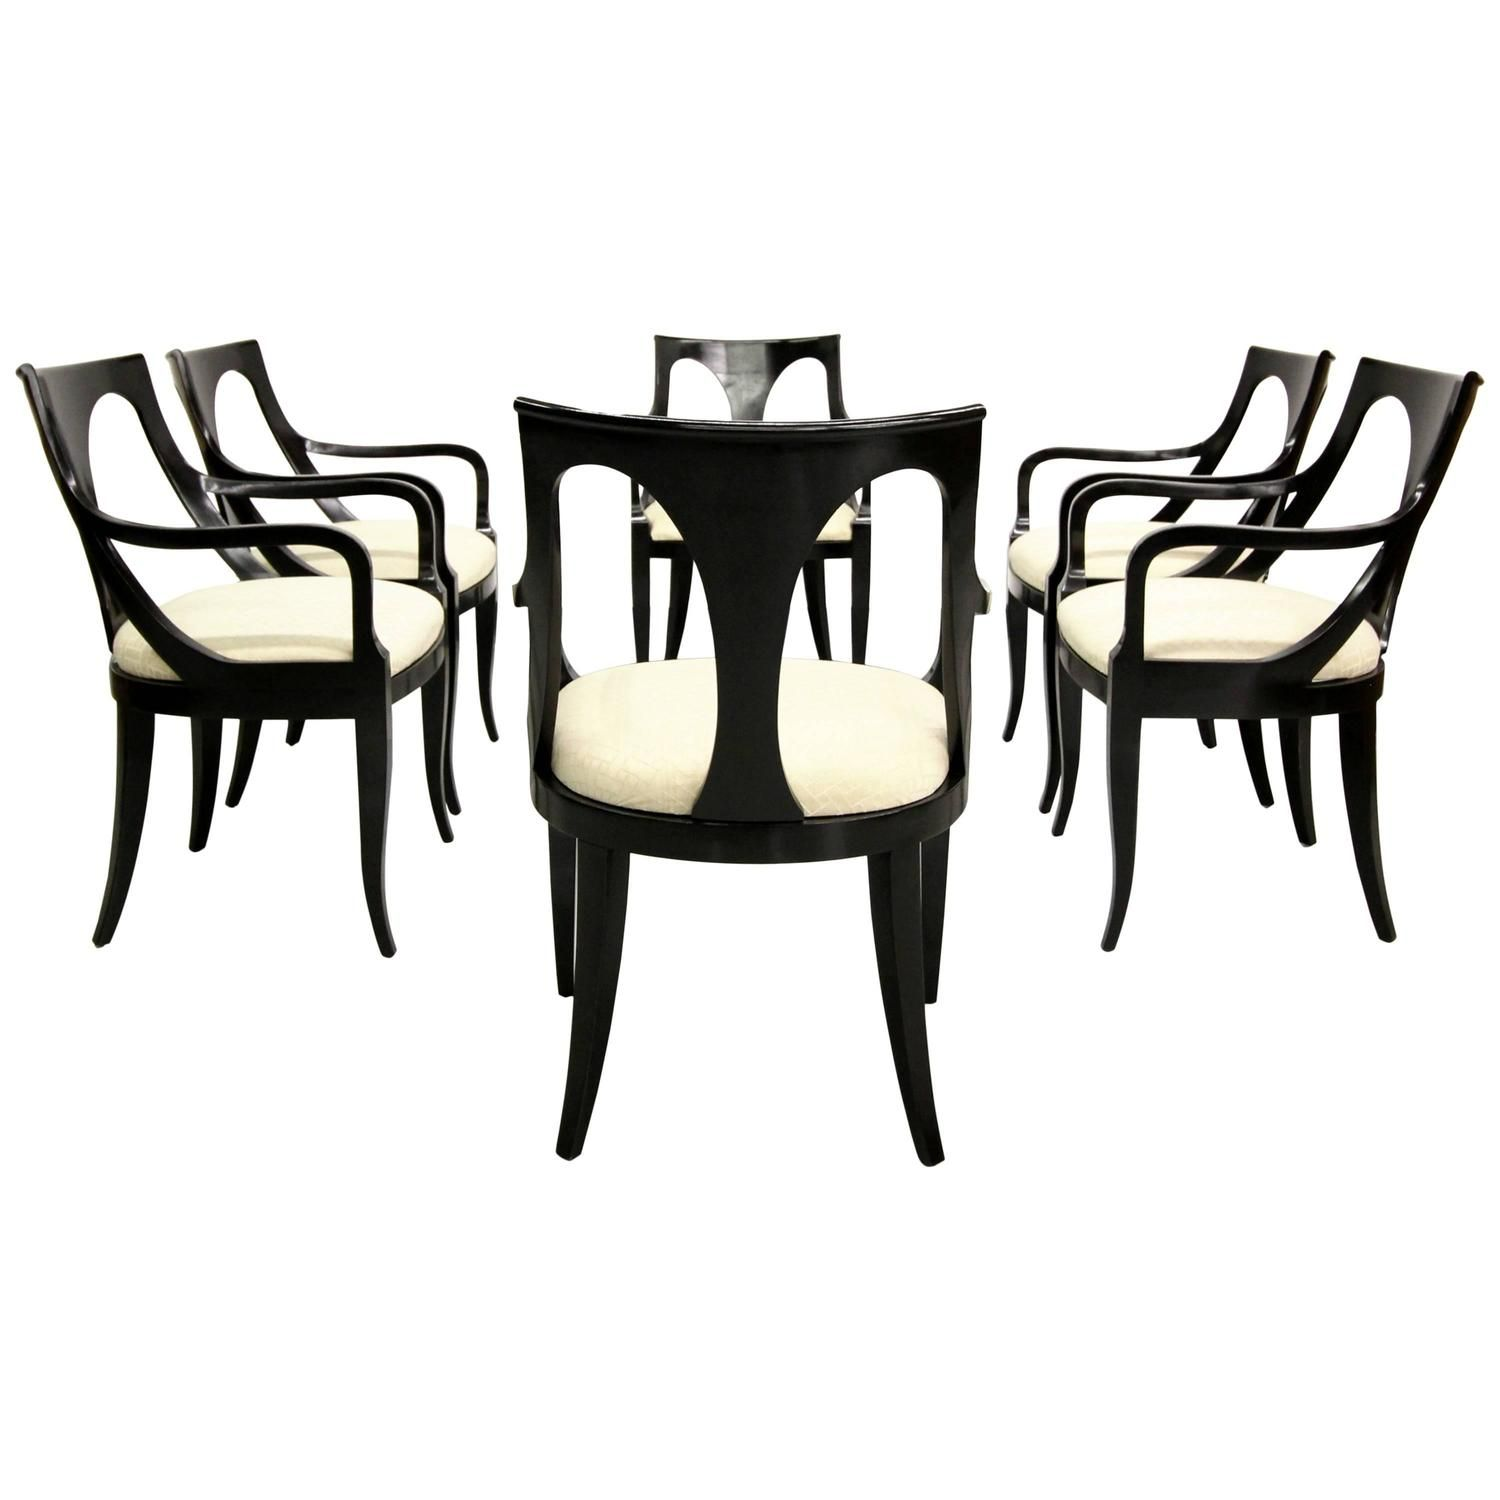 Mid Century Modern Dining Room Chairs set of six black mid-century modern dining chairskindel